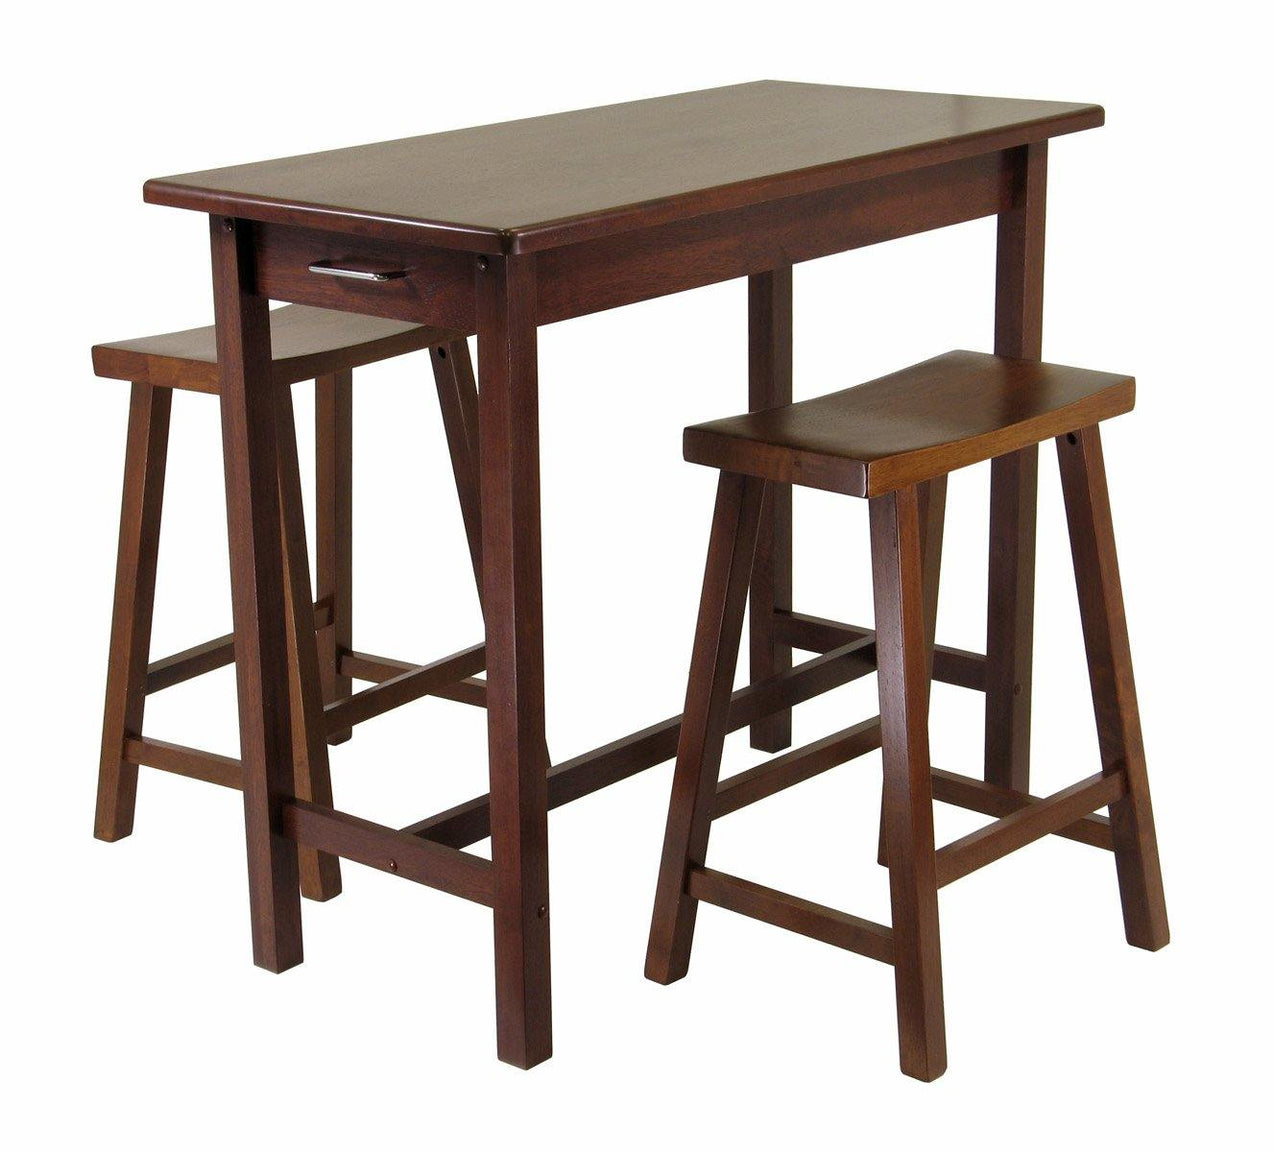 Sally 3-Pc Breakfast Table Set with 2 Saddle Seat Stools - My USA Furniture